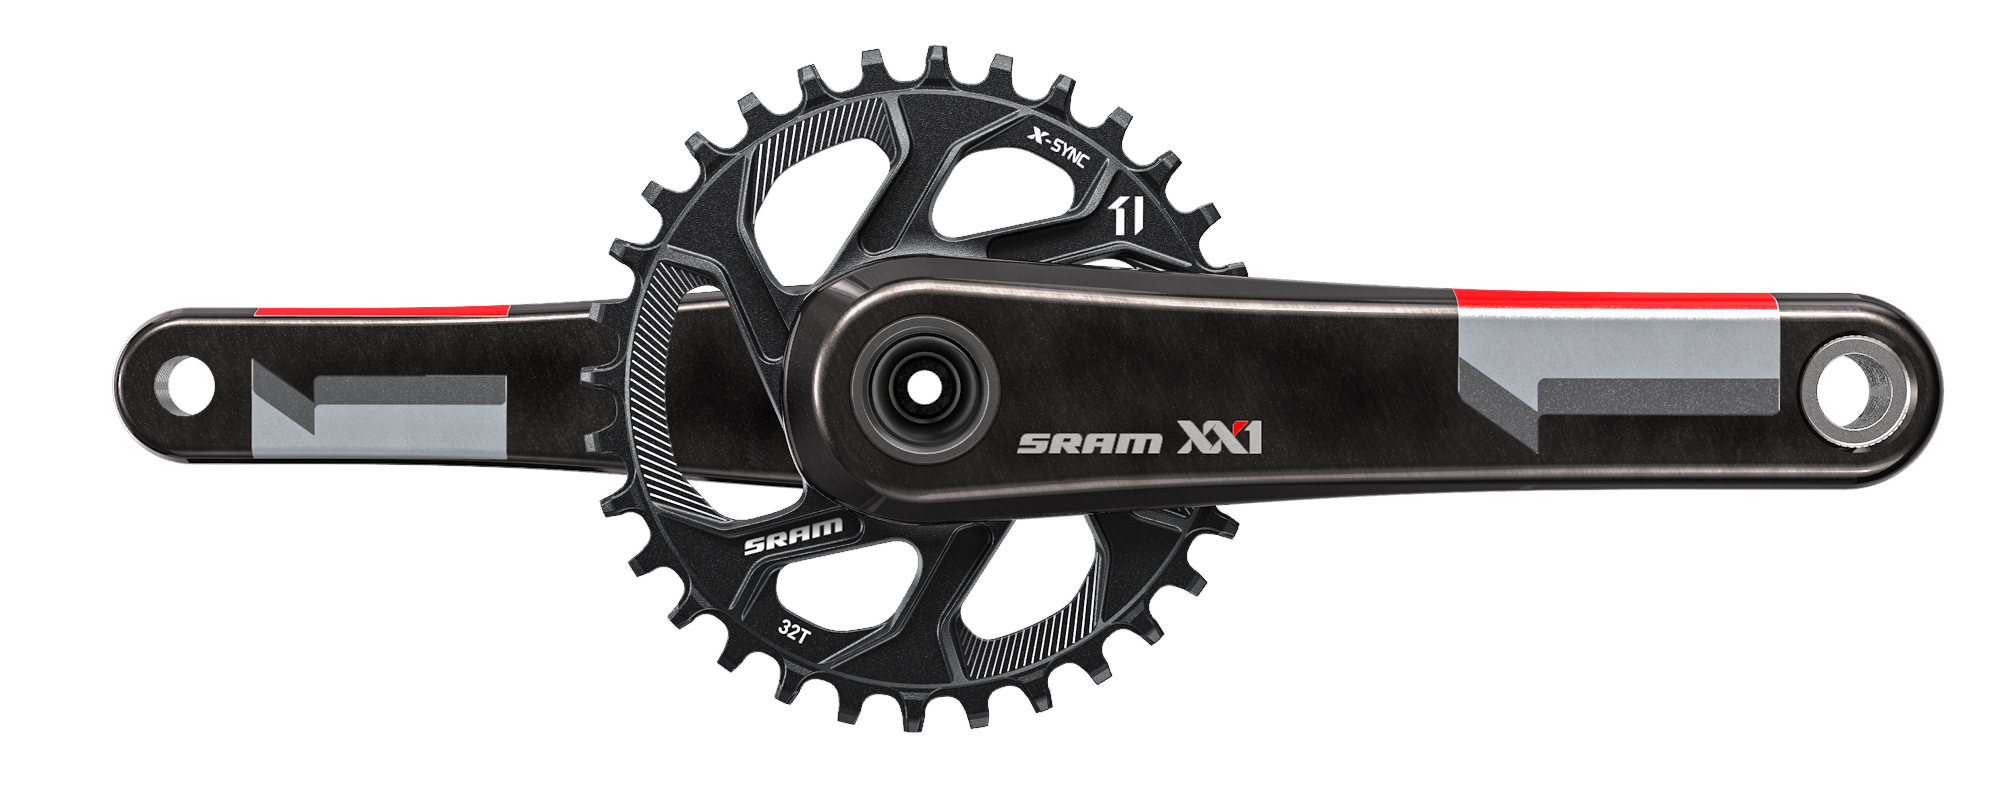 SRAM_MTB_XX1_Crank_DM_ChainRing_Side_M